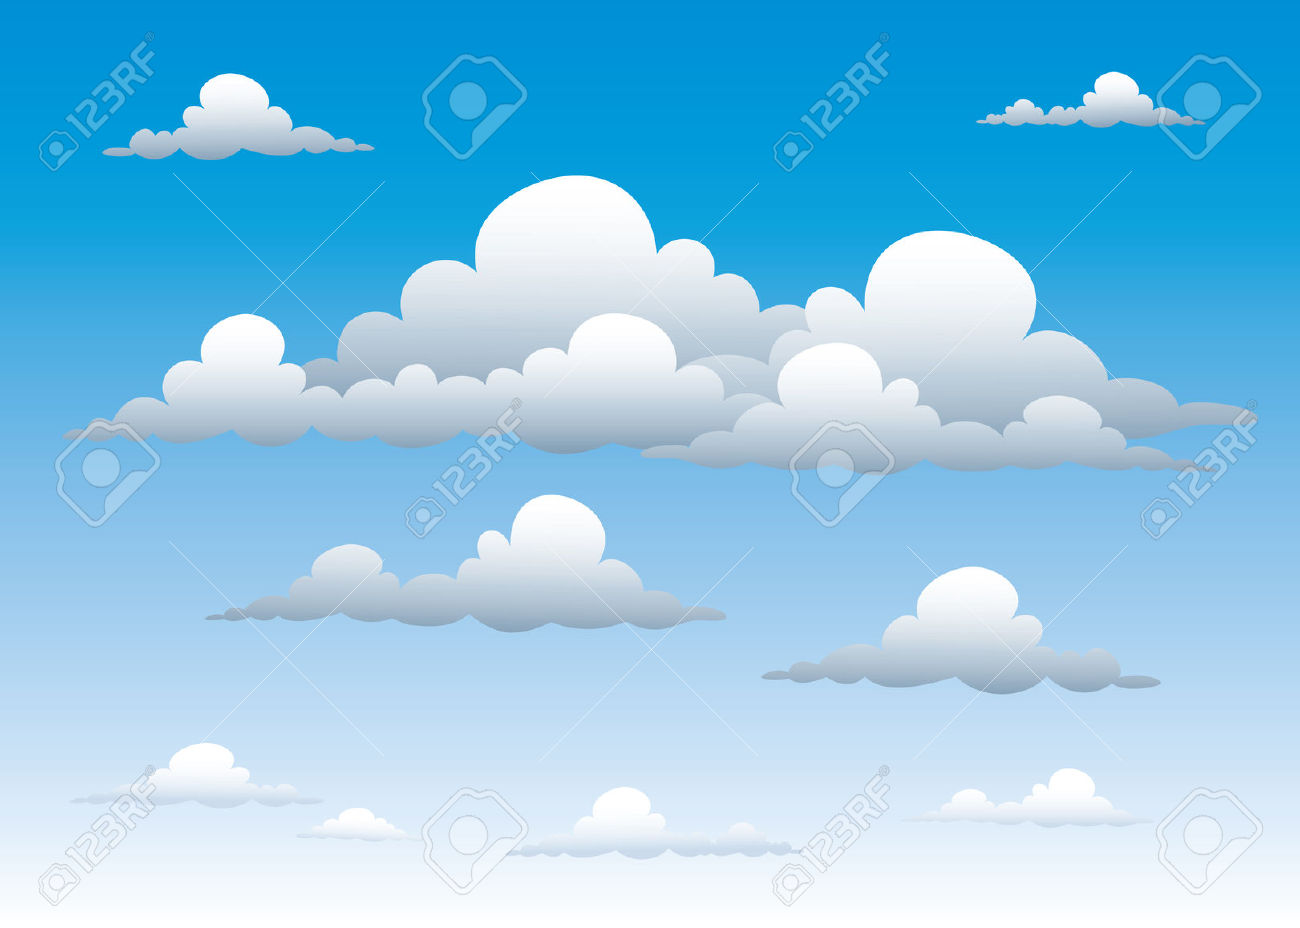 Blue Sky with Clouds Clip Art.